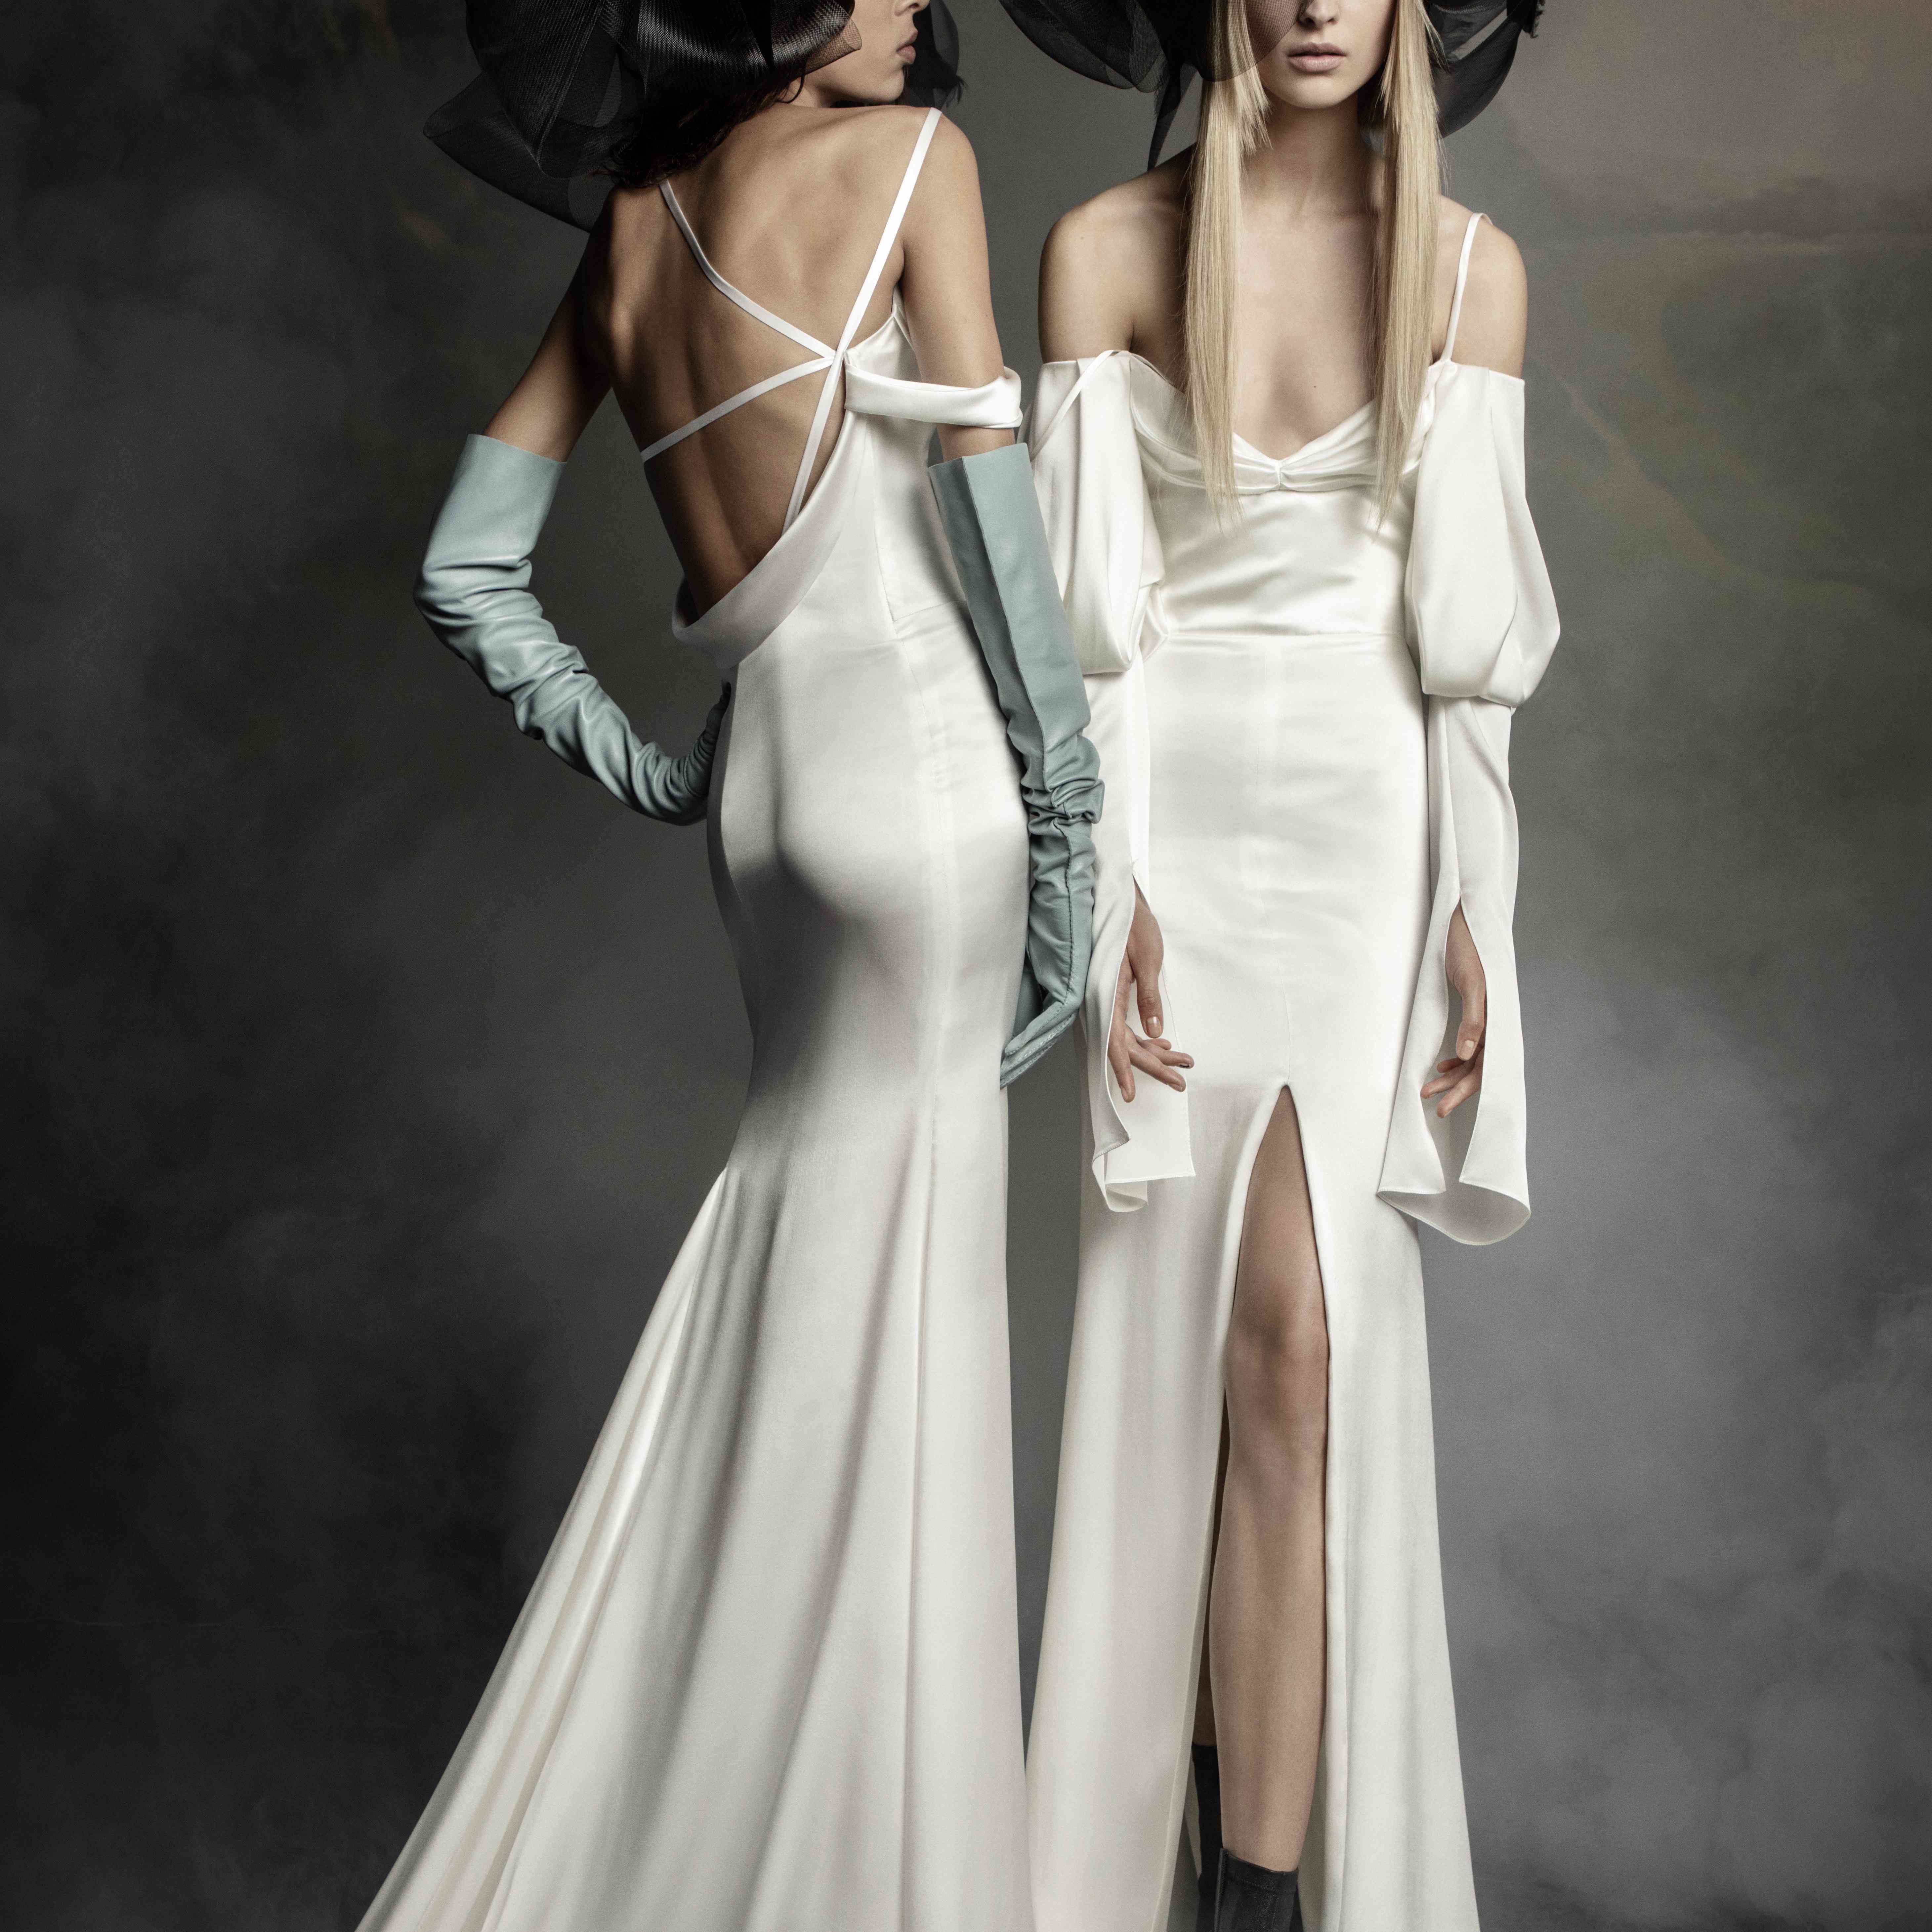 Two models in off-the-shoulder fit and flare gowns with strappy sleeve detail and black headpieces